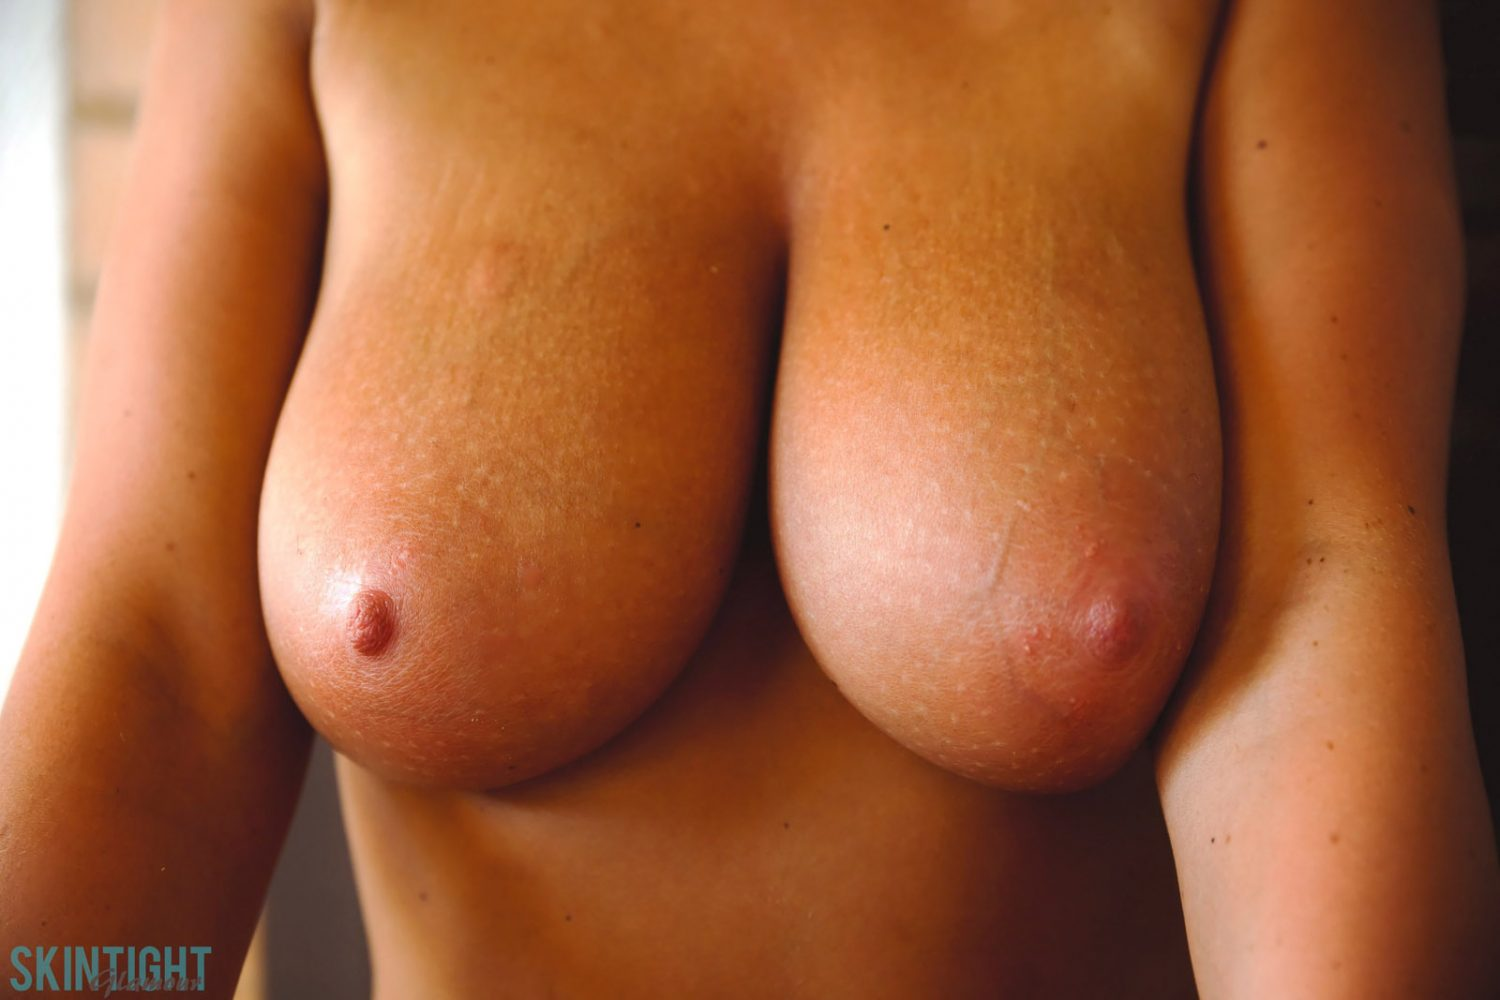 Clothed Milfs Nude Men